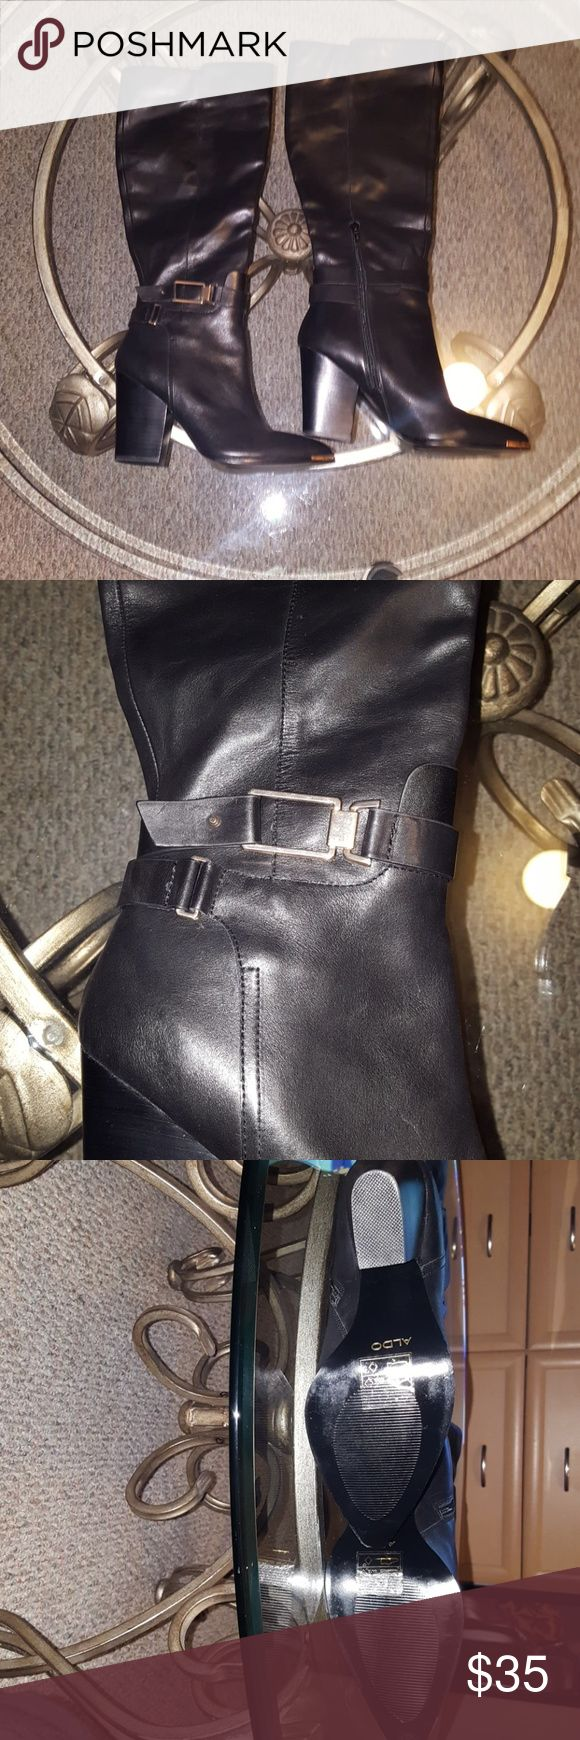 Aldo Knee High Boots Price: $35 or best offer  Description:? New amazingly cute, leather knee high Aldo boots with gold buckle around the ankle and gold detail at the toe.? The heal is 4? and heal to top measures 21? with half zip along each side.? Only worn once.? Aldo Shoes Heeled Boots